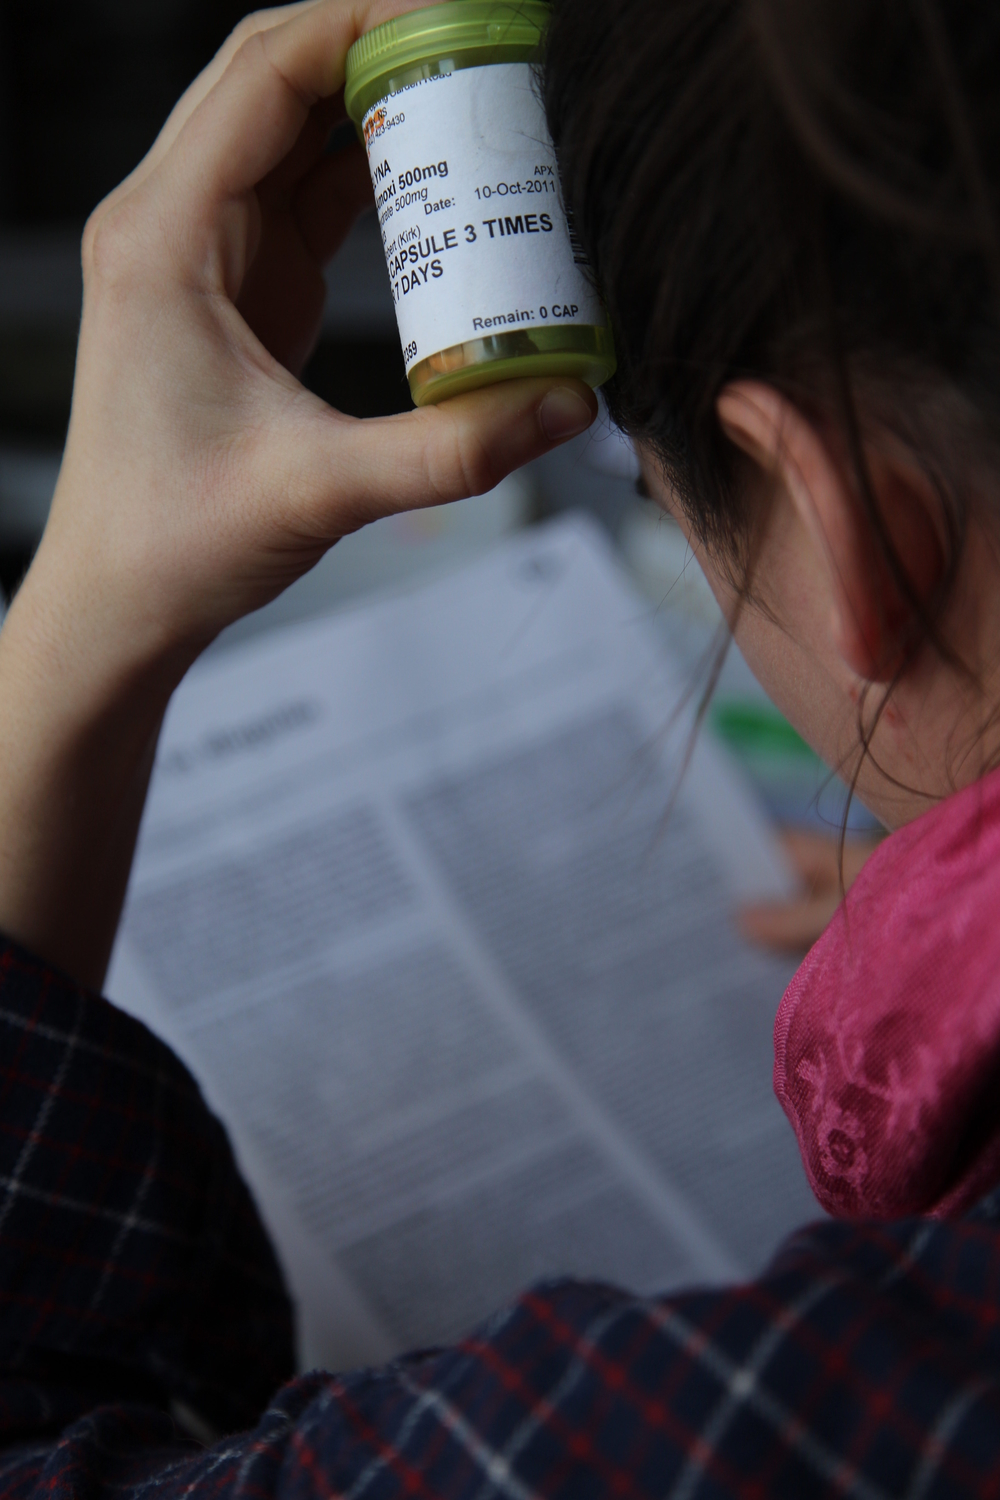 Precription drugs are changing hands at Canadian universities. (Photo by Adele van Wyk.)